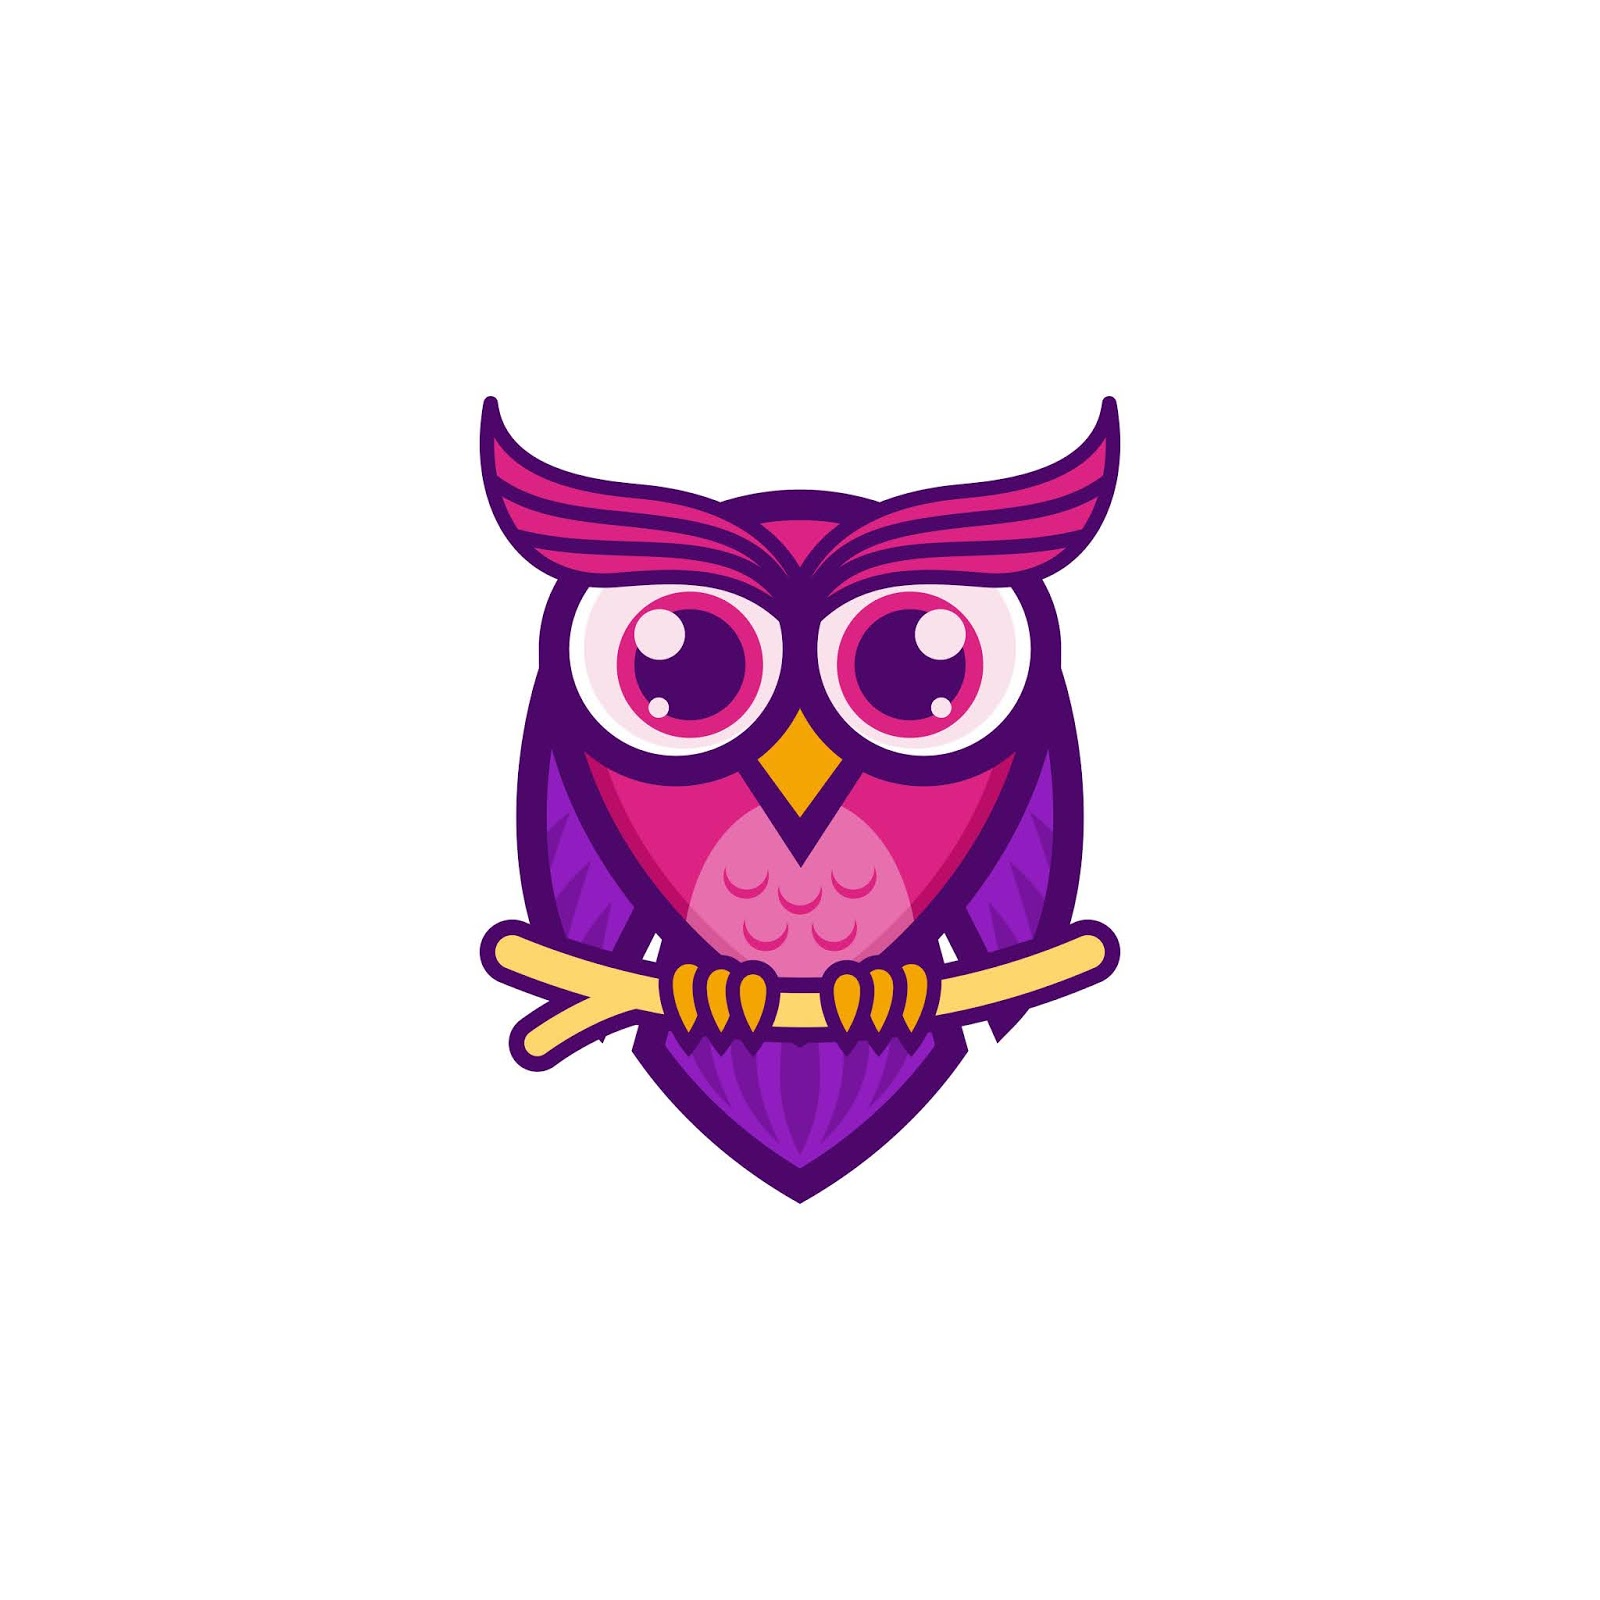 Owl Vector Design Free Download Vector CDR, AI, EPS and PNG Formats